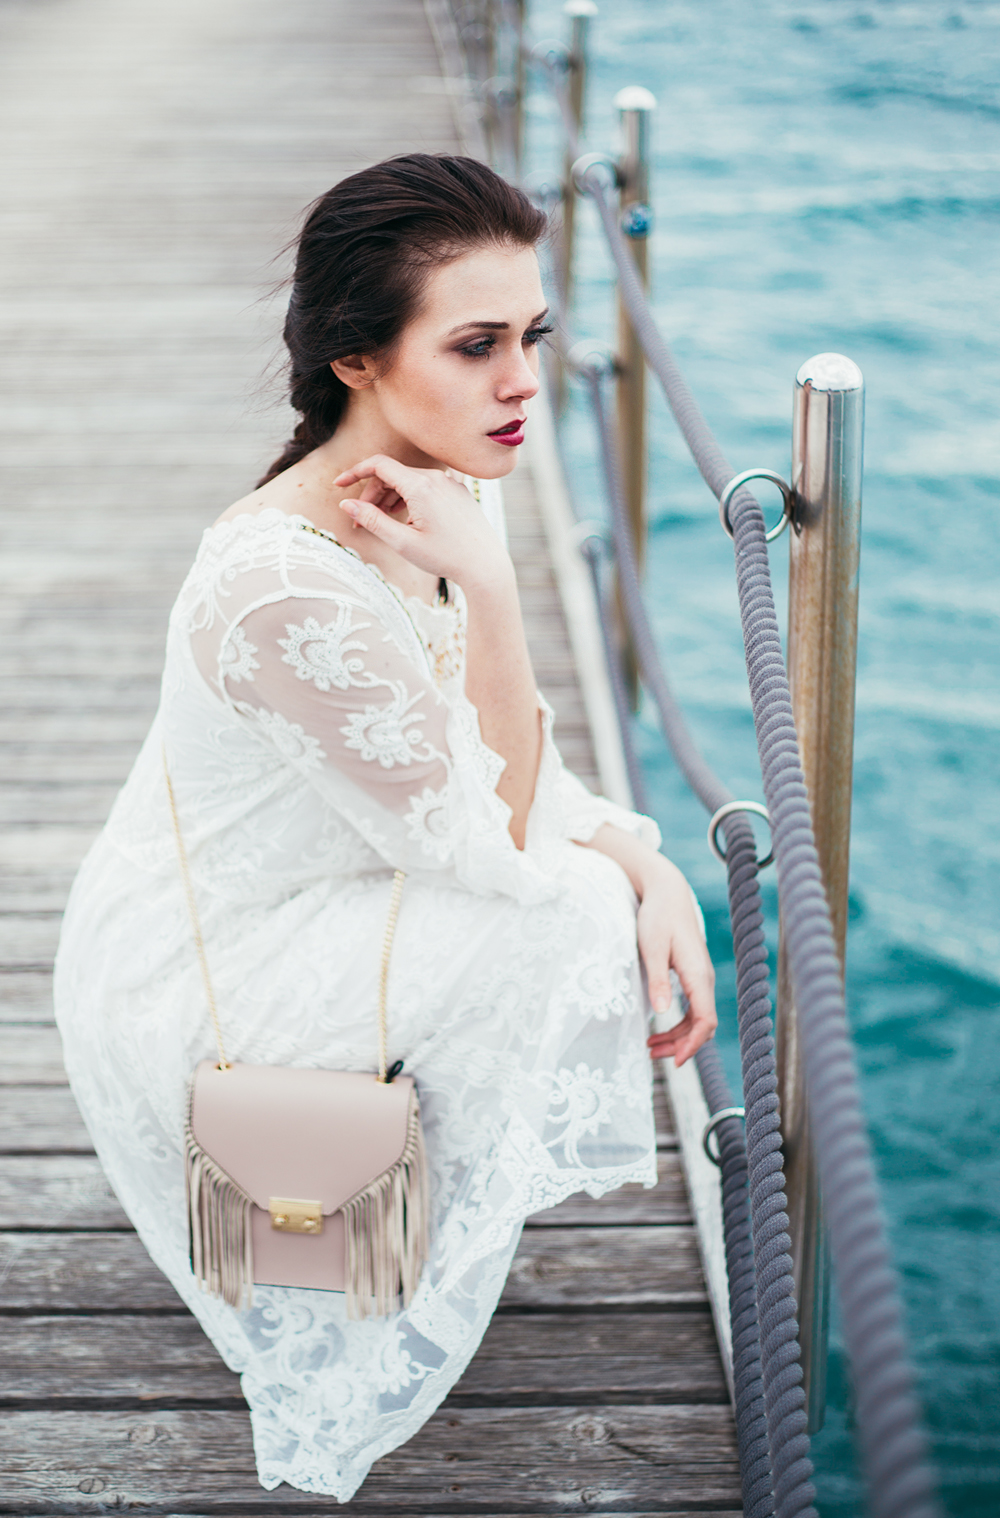 Eva Ahačevčič_Love, Eva_OOTD_FAshion blogger_Terminal 3_WHite dress_Bohemian_Romantic_Summer